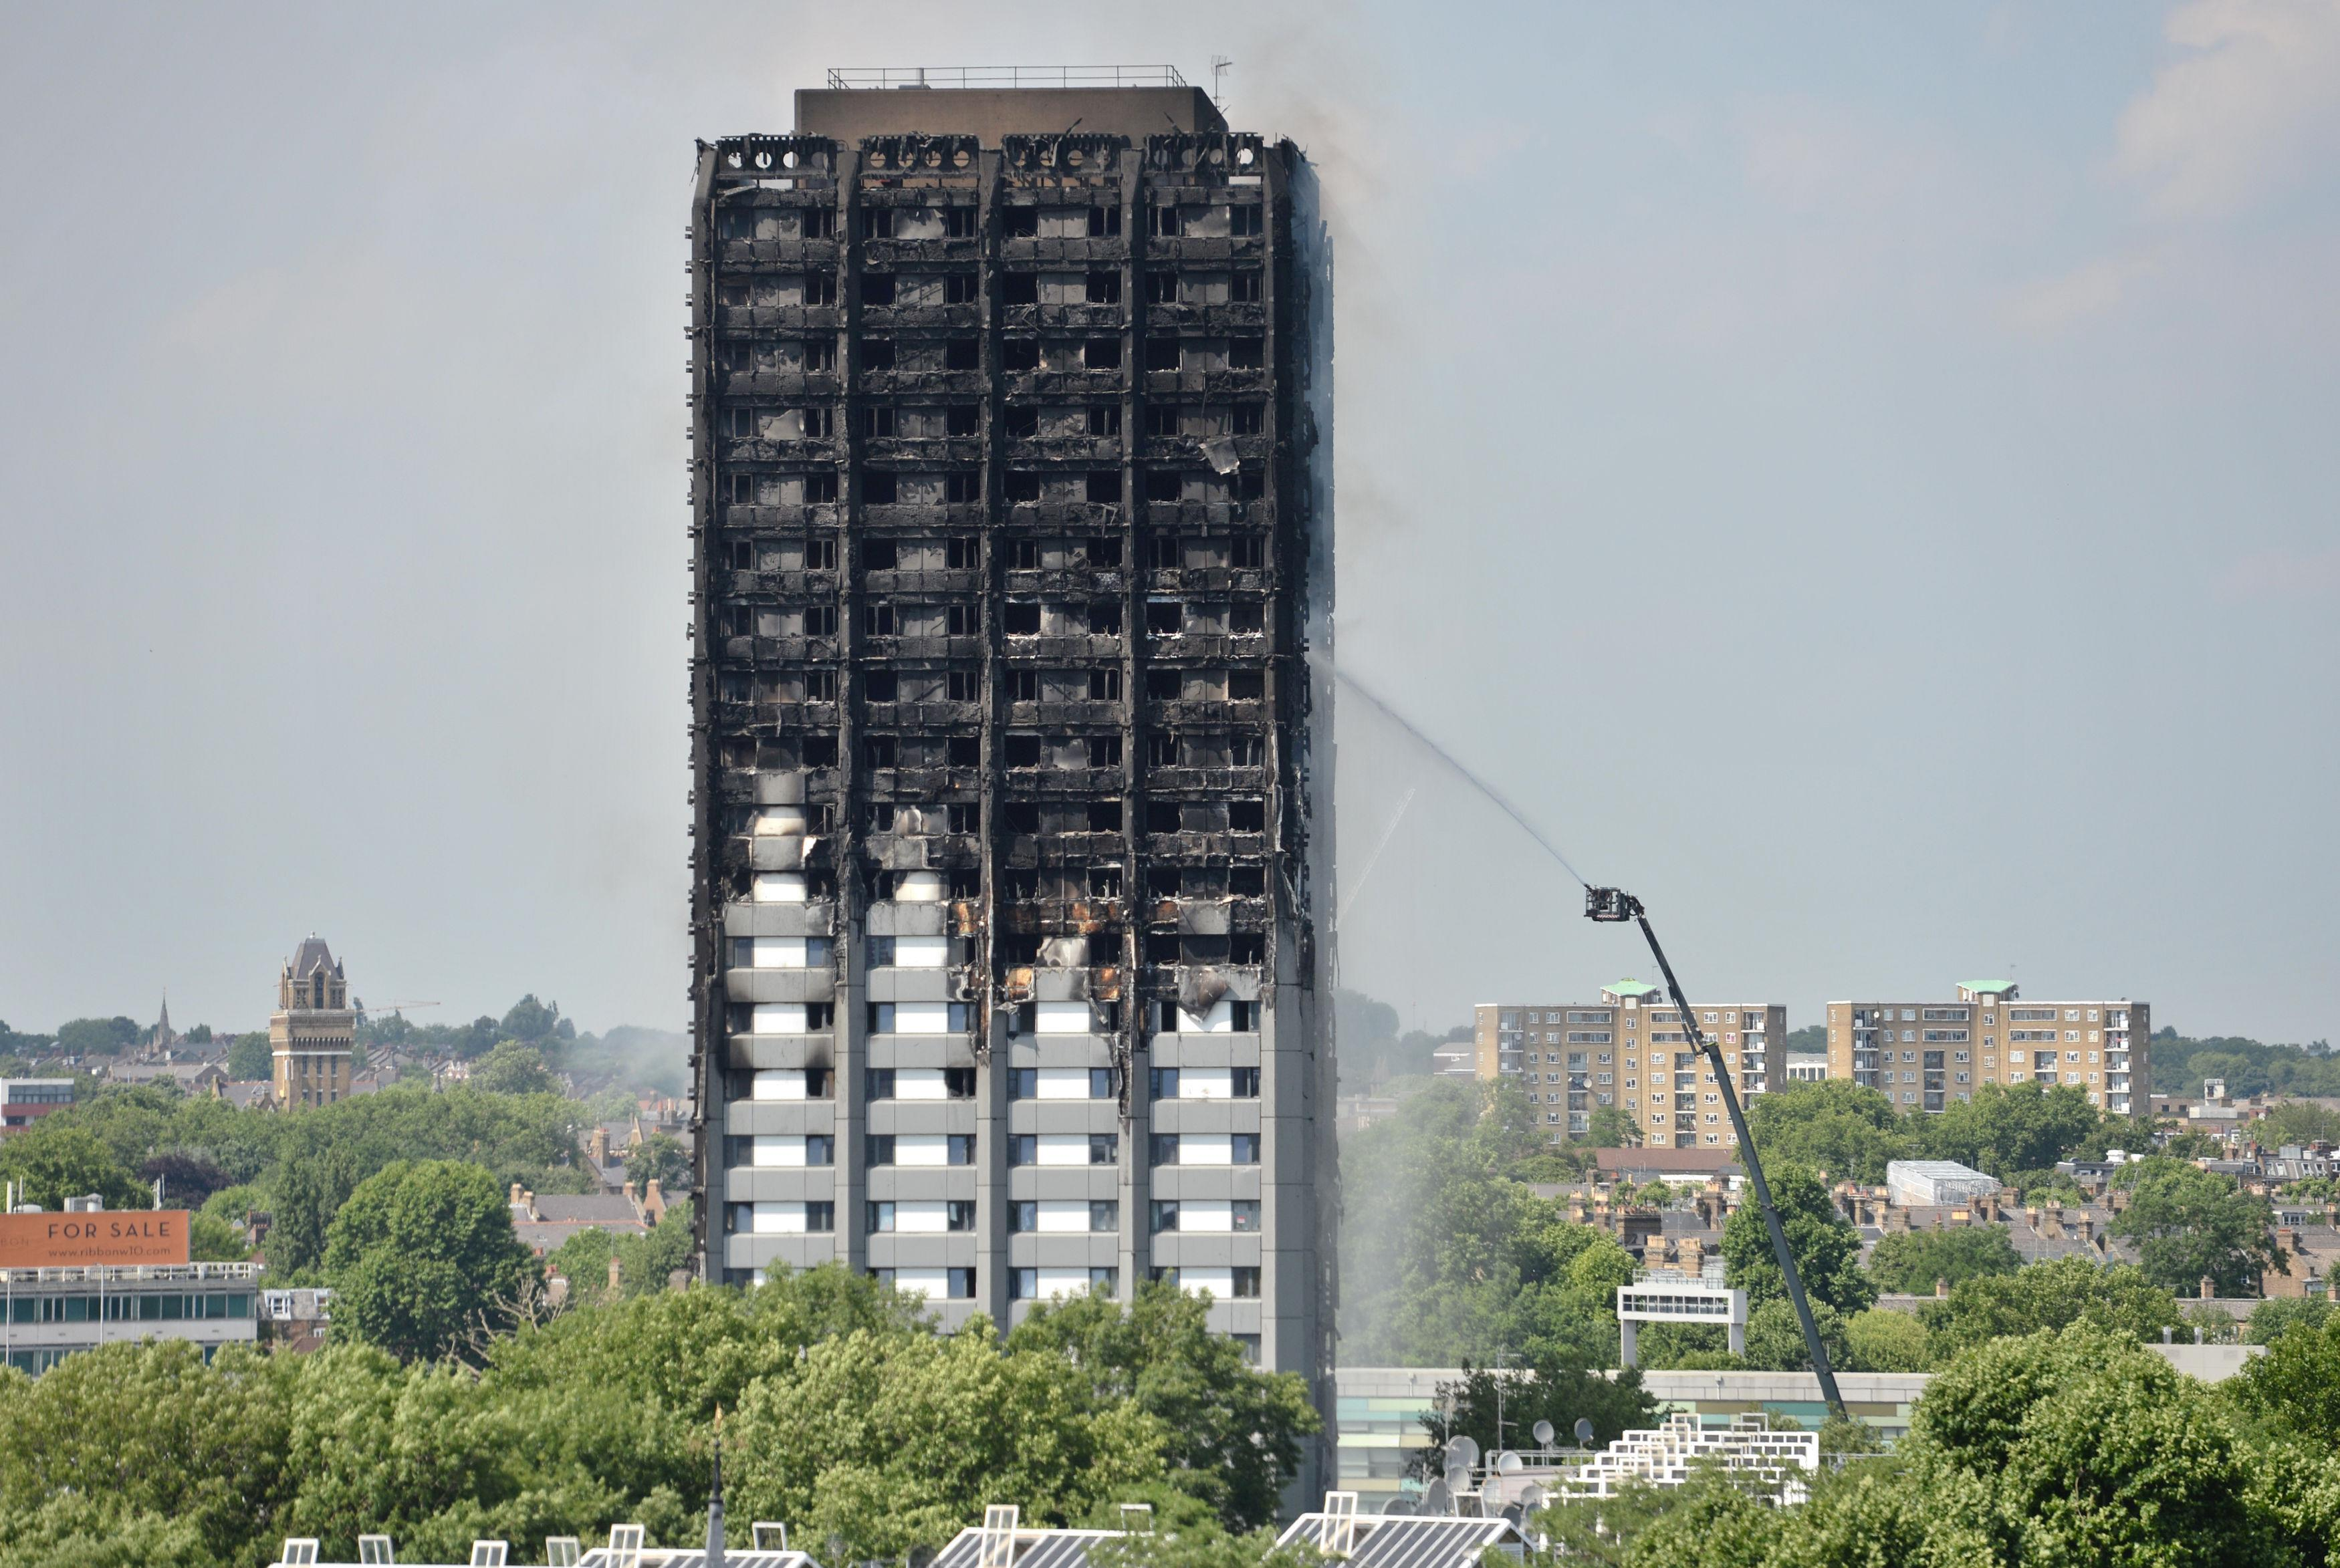 'Nothing much' done to improve tower block evacuation training since Grenfell, firefighters union claims